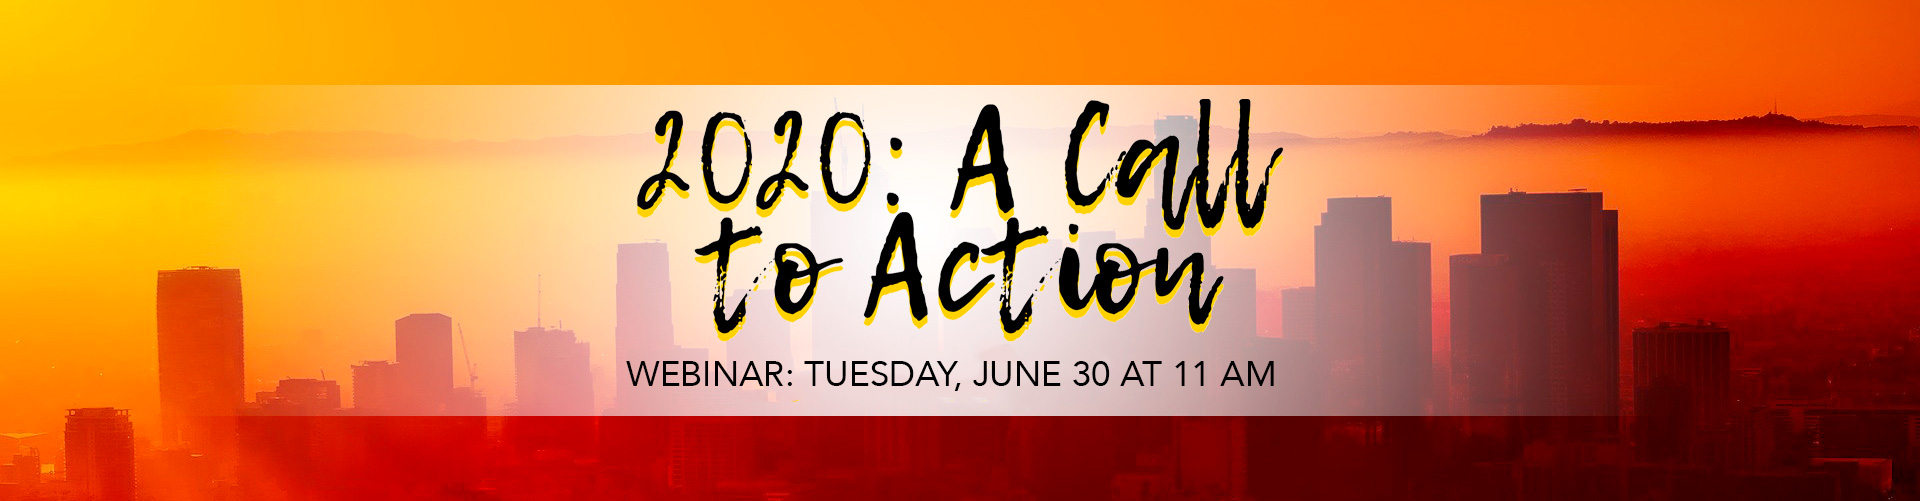 , 2020: A Call to Action Webinar Tuesday, June 30